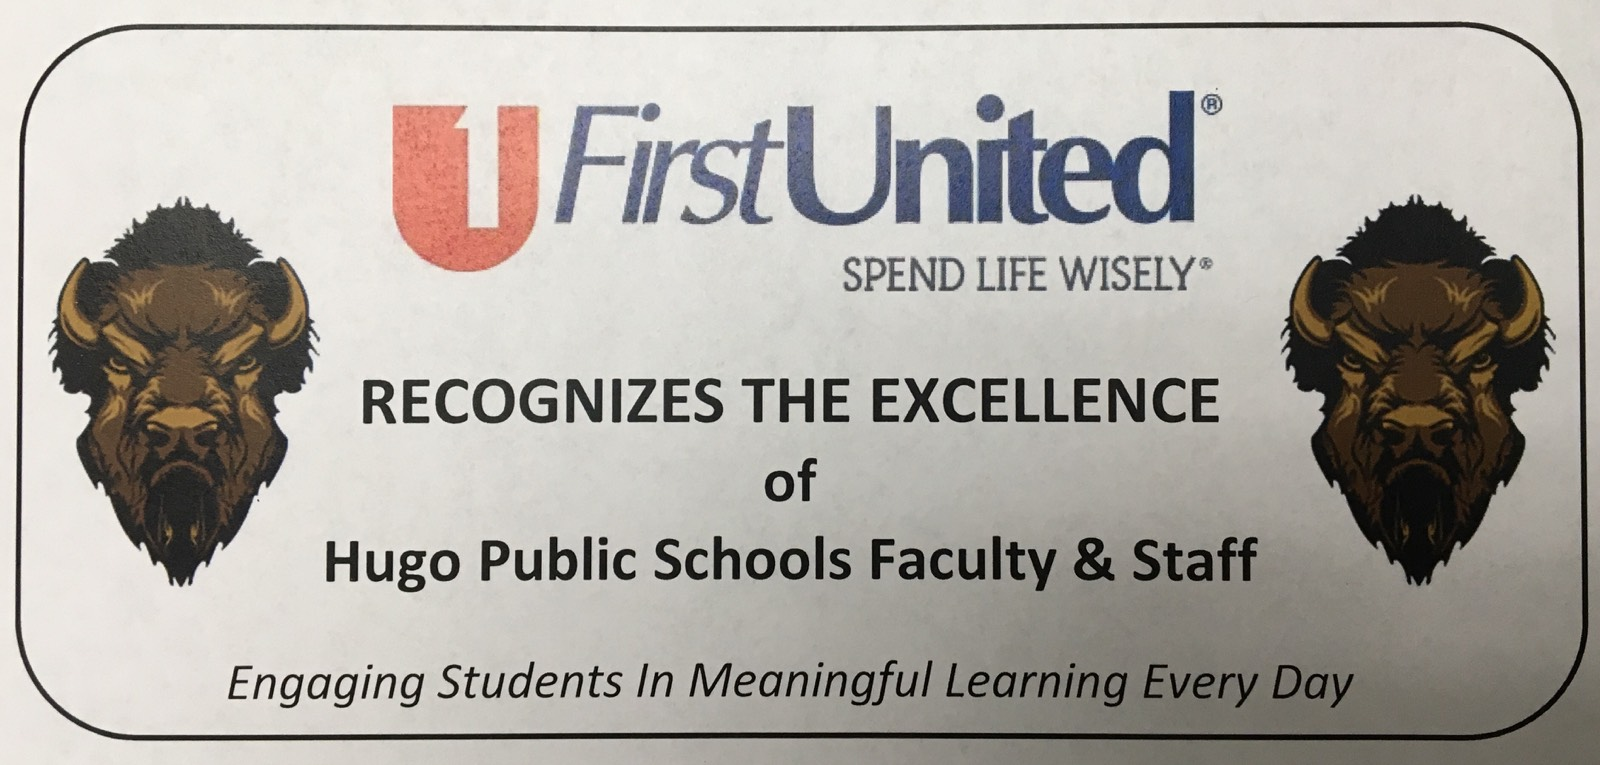 First United Bank Recognizes the excellence of Hugo Public Schools Faculty and Staff